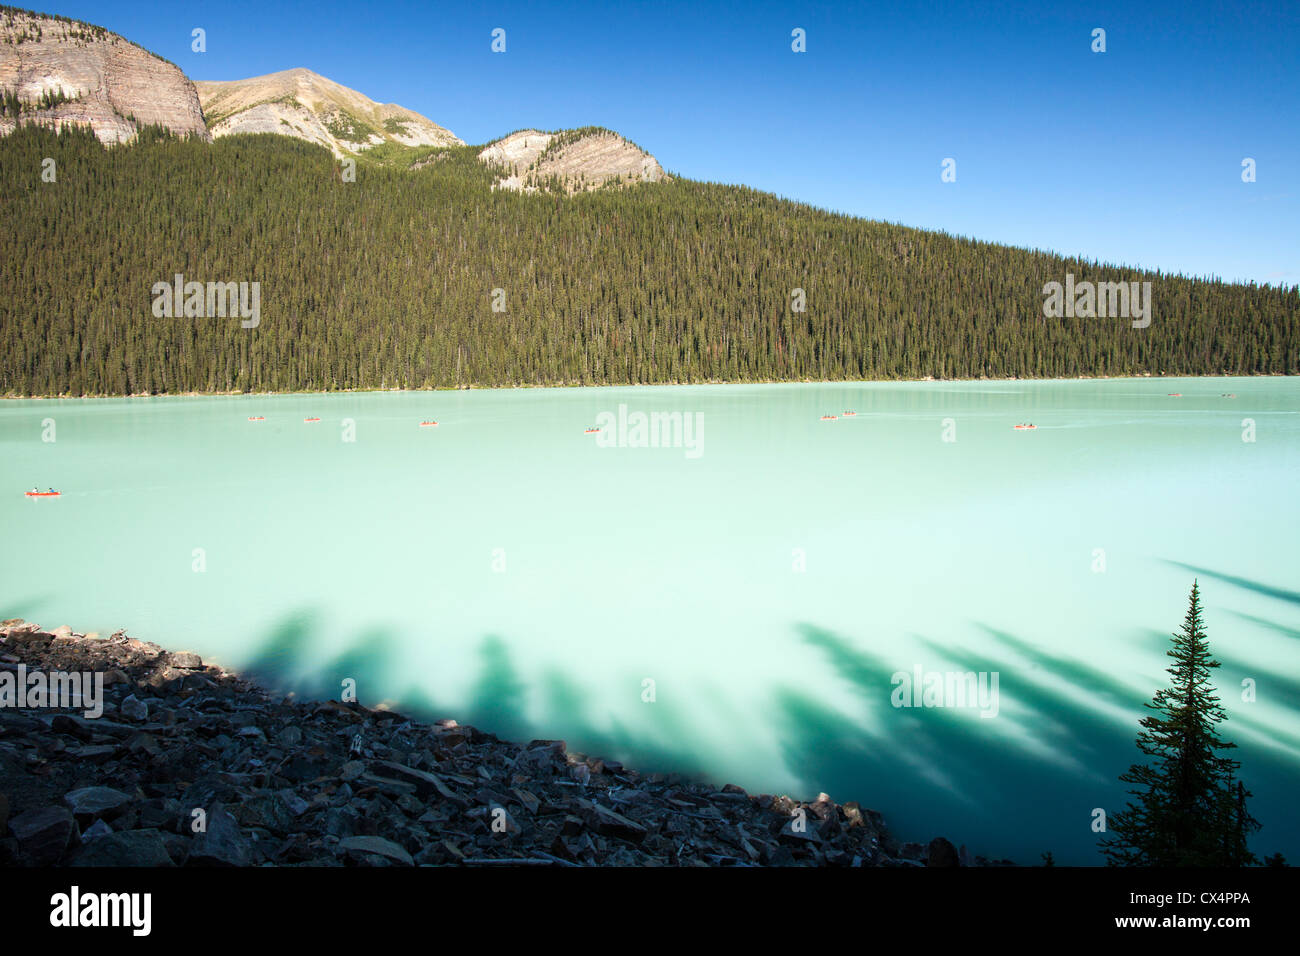 Lake Loise in the Rocky Mountains, Alberta, Canada. - Stock Image